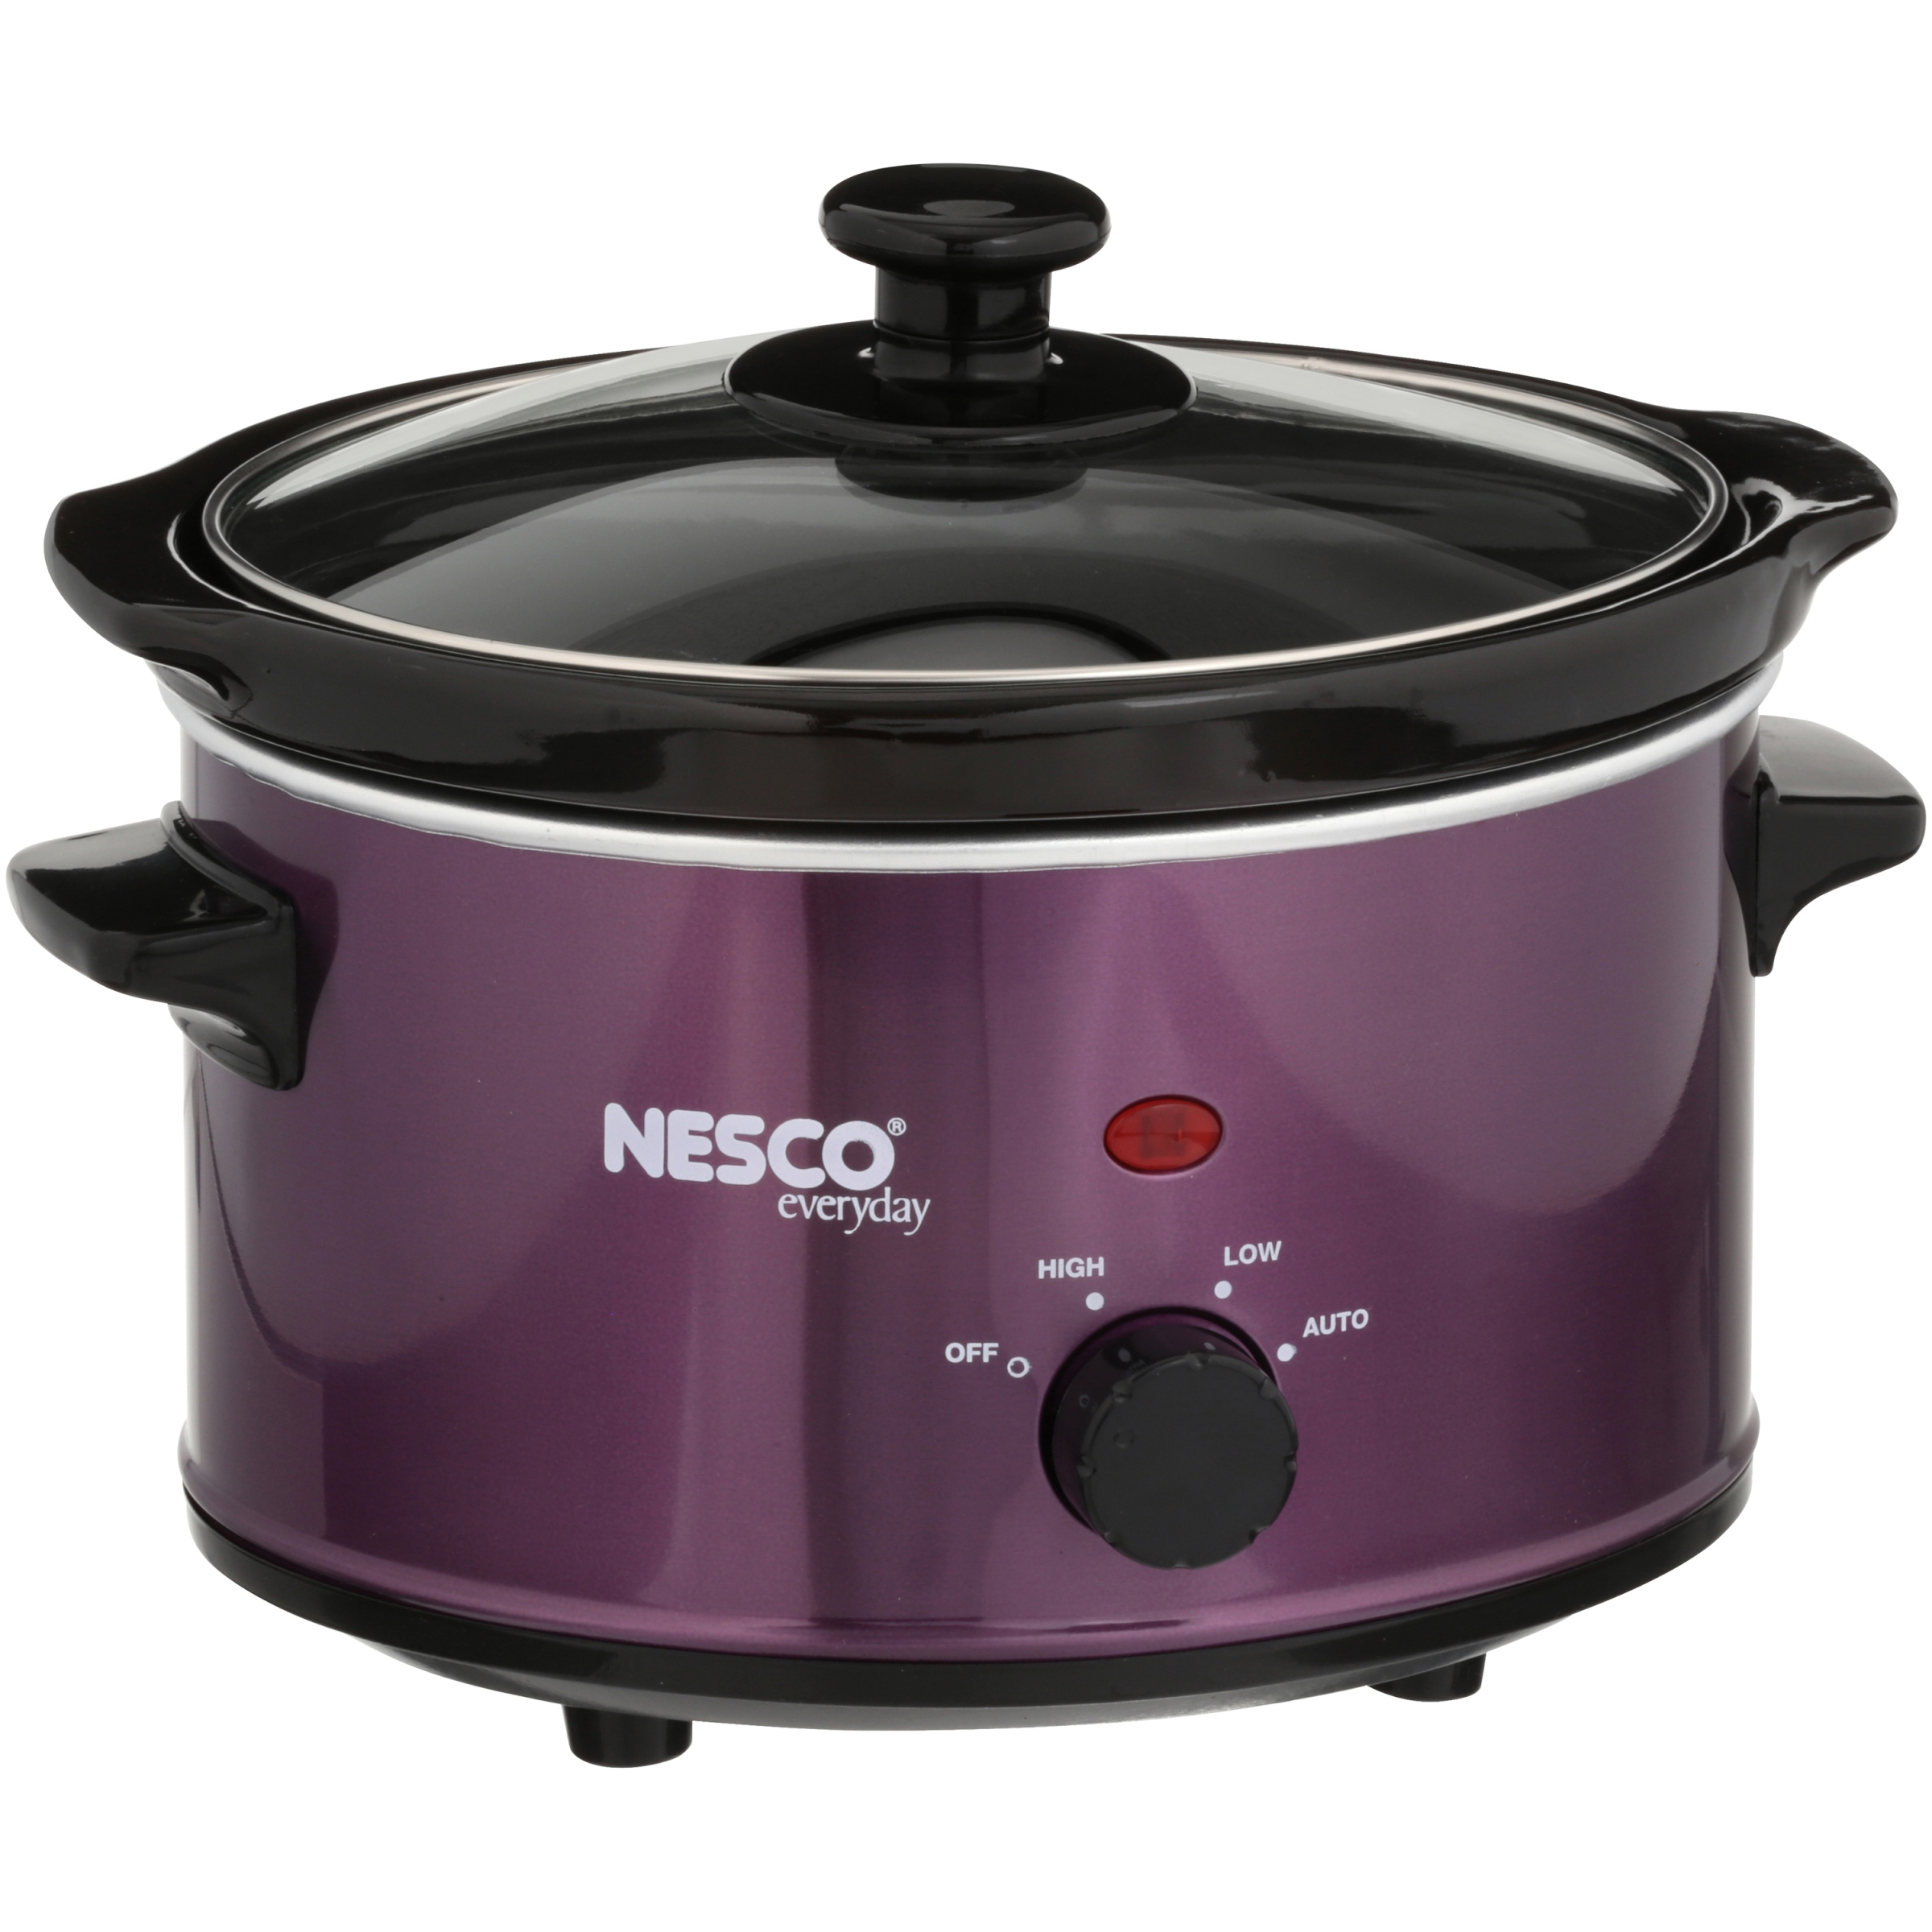 Nesco 1.5 Qt Slow Cooker (Metallic Violet)